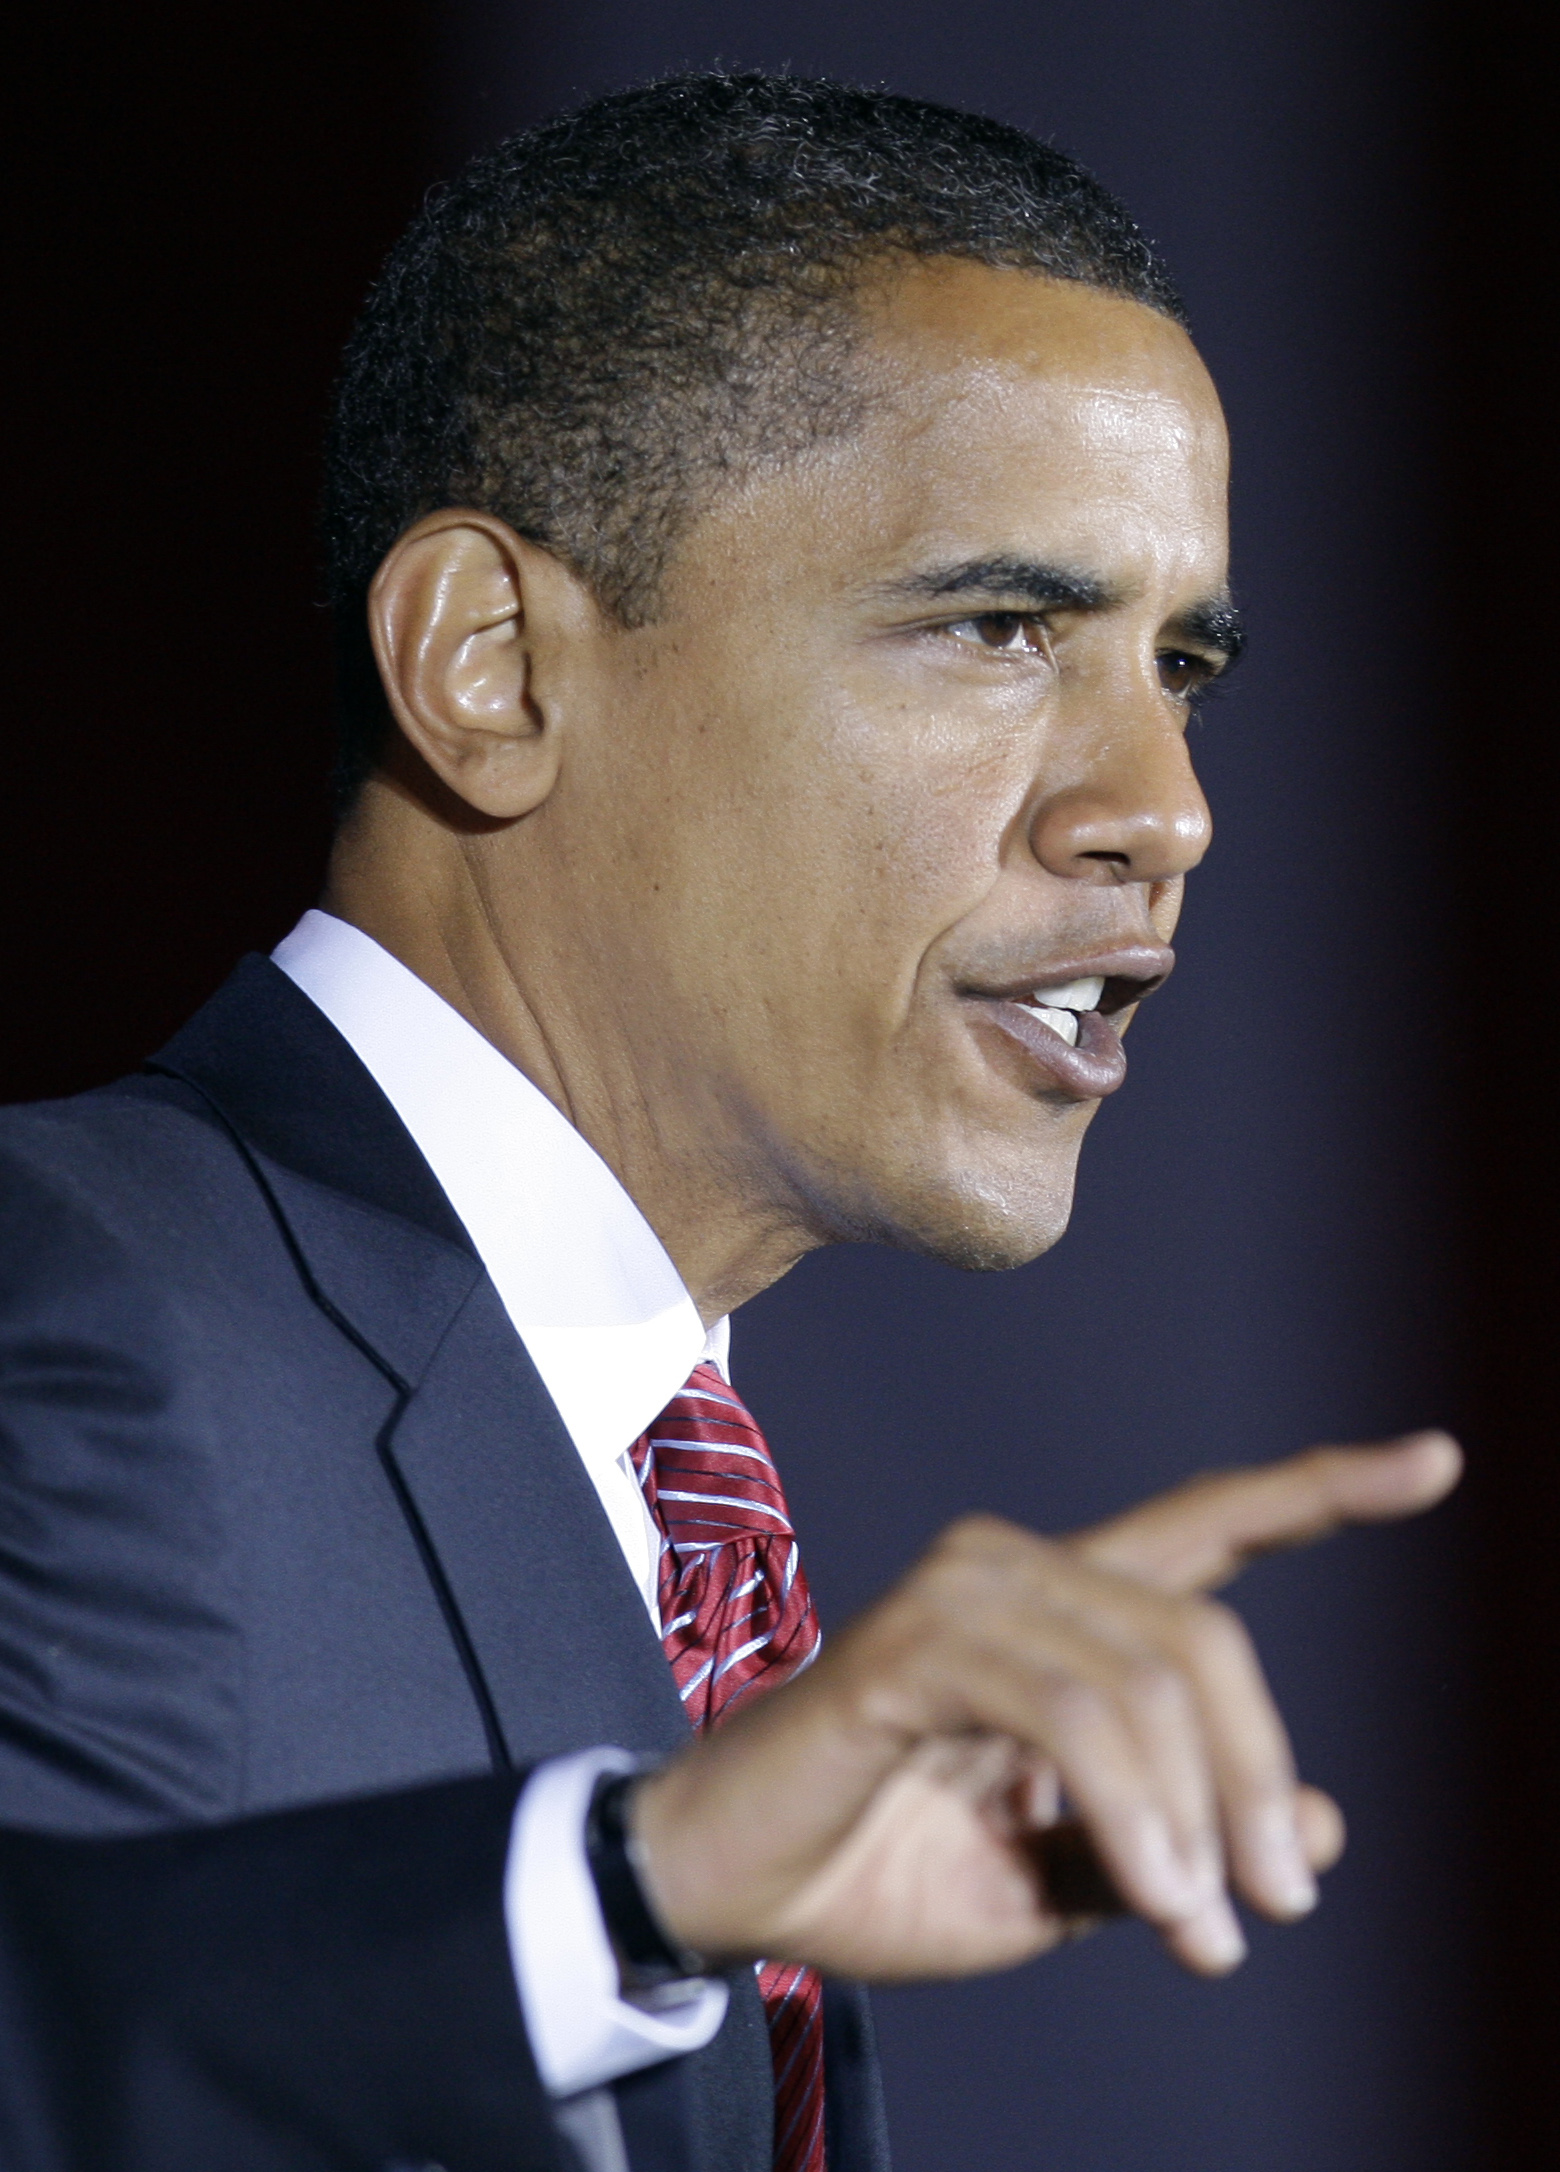 Democratic presidential candidate Barack Obama speaks at the Canton Civic Center in Canton, Ohio on Monday.